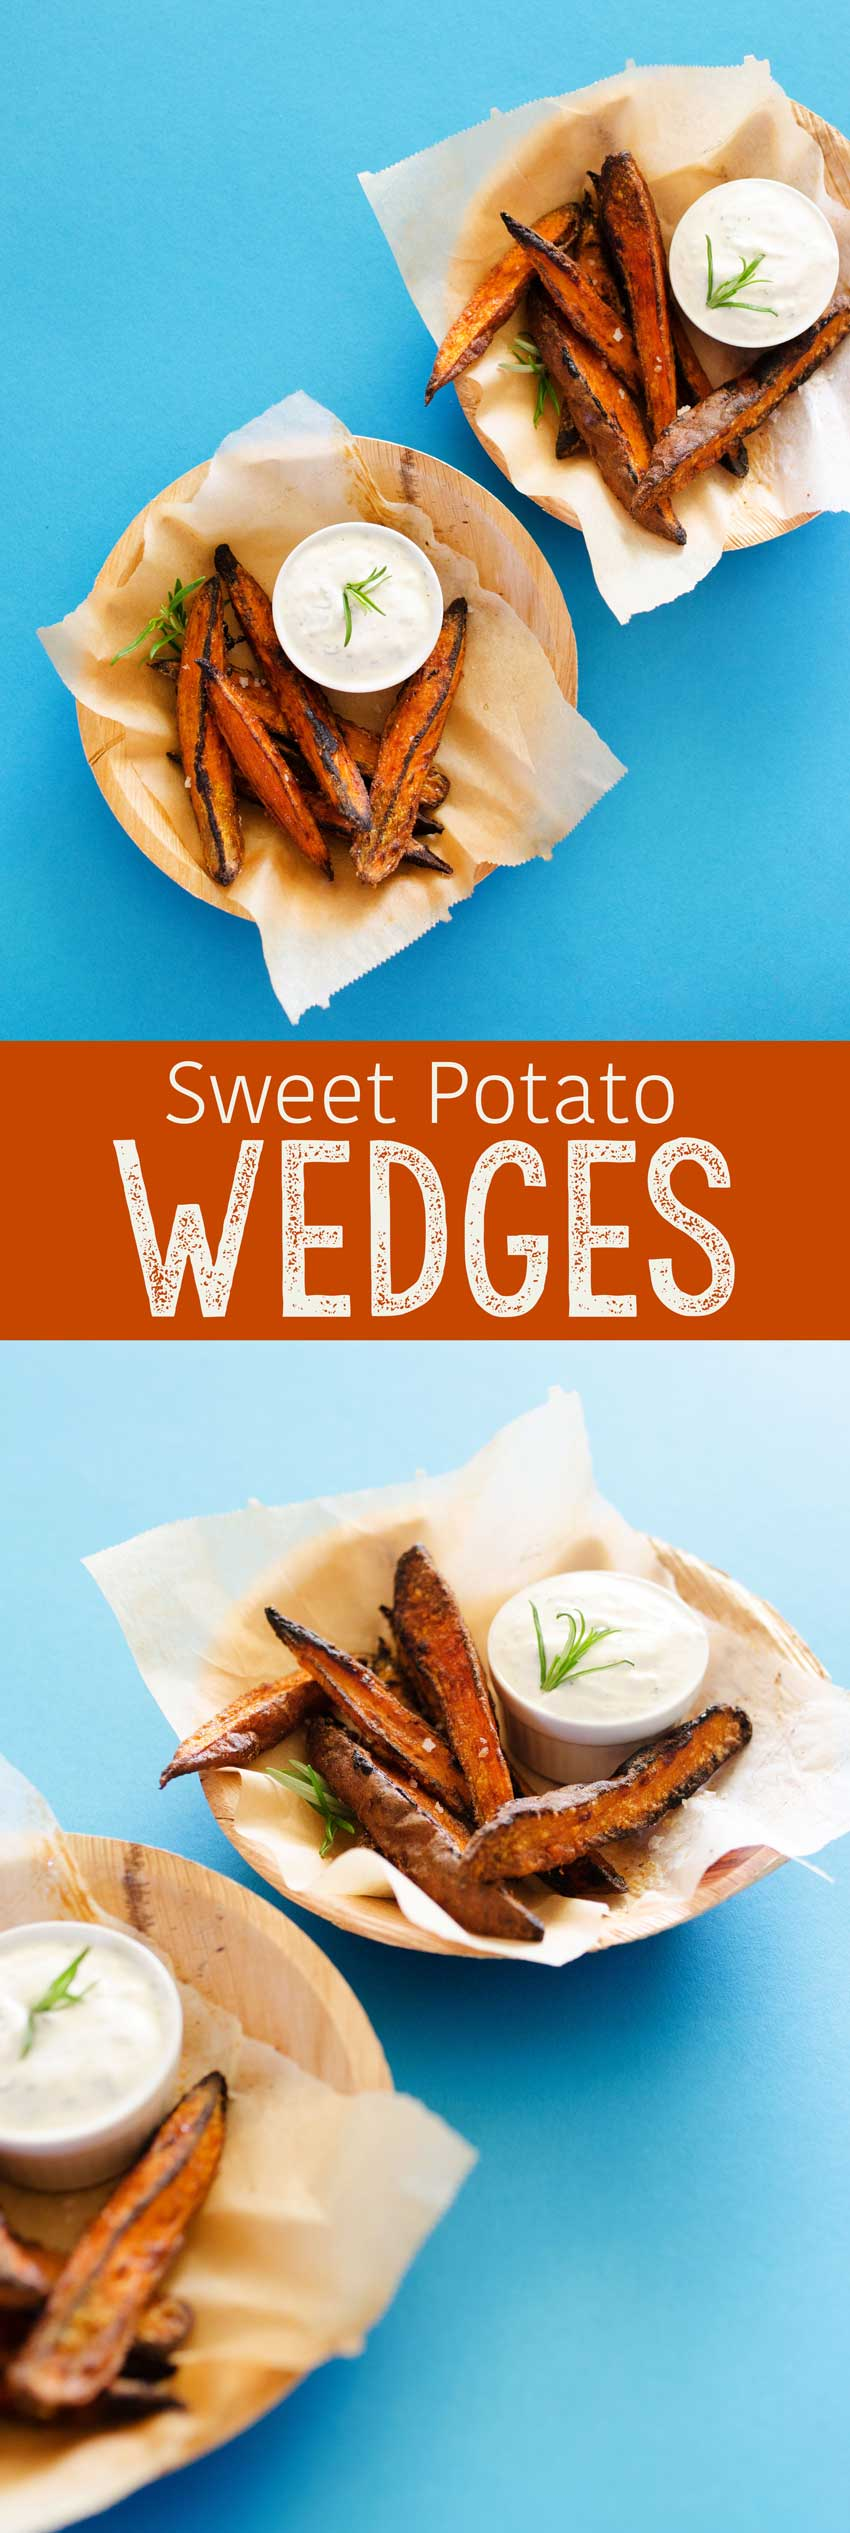 Delicious and easy sweet potato wedges, the perfect side when grilling!